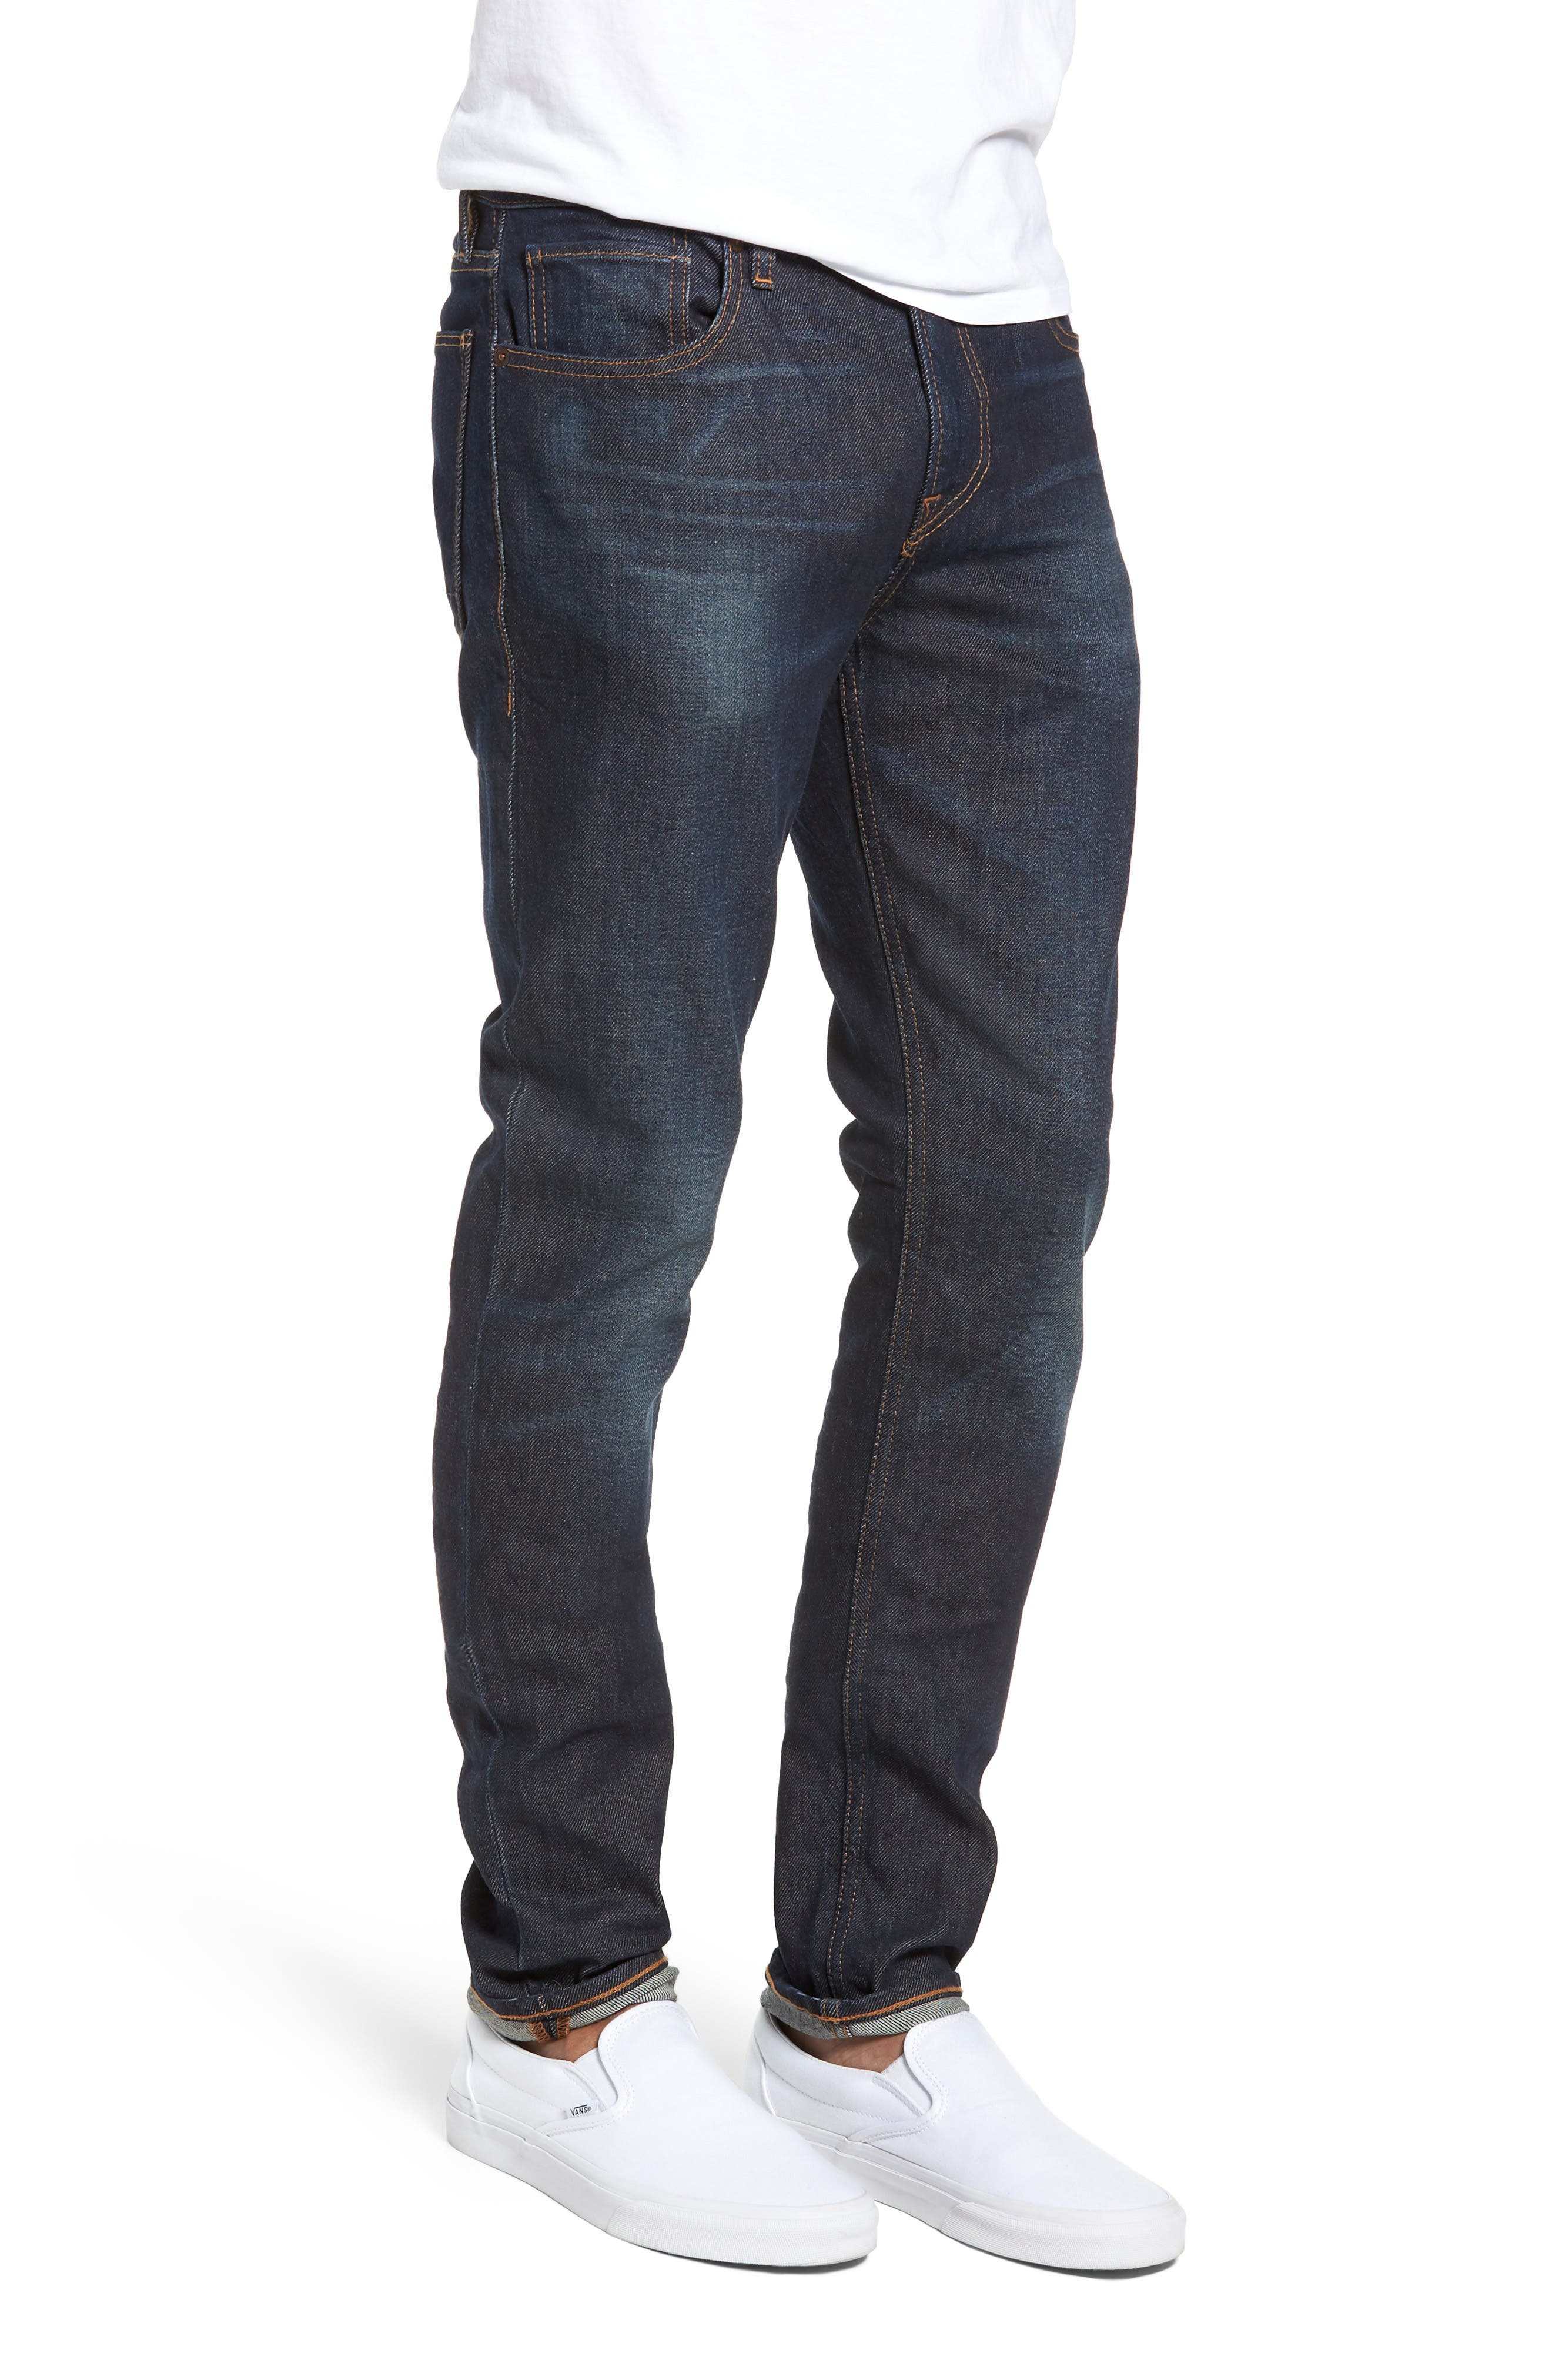 HUDSON JEANS, Axl Skinny Fit Jeans, Alternate thumbnail 3, color, VERKLER